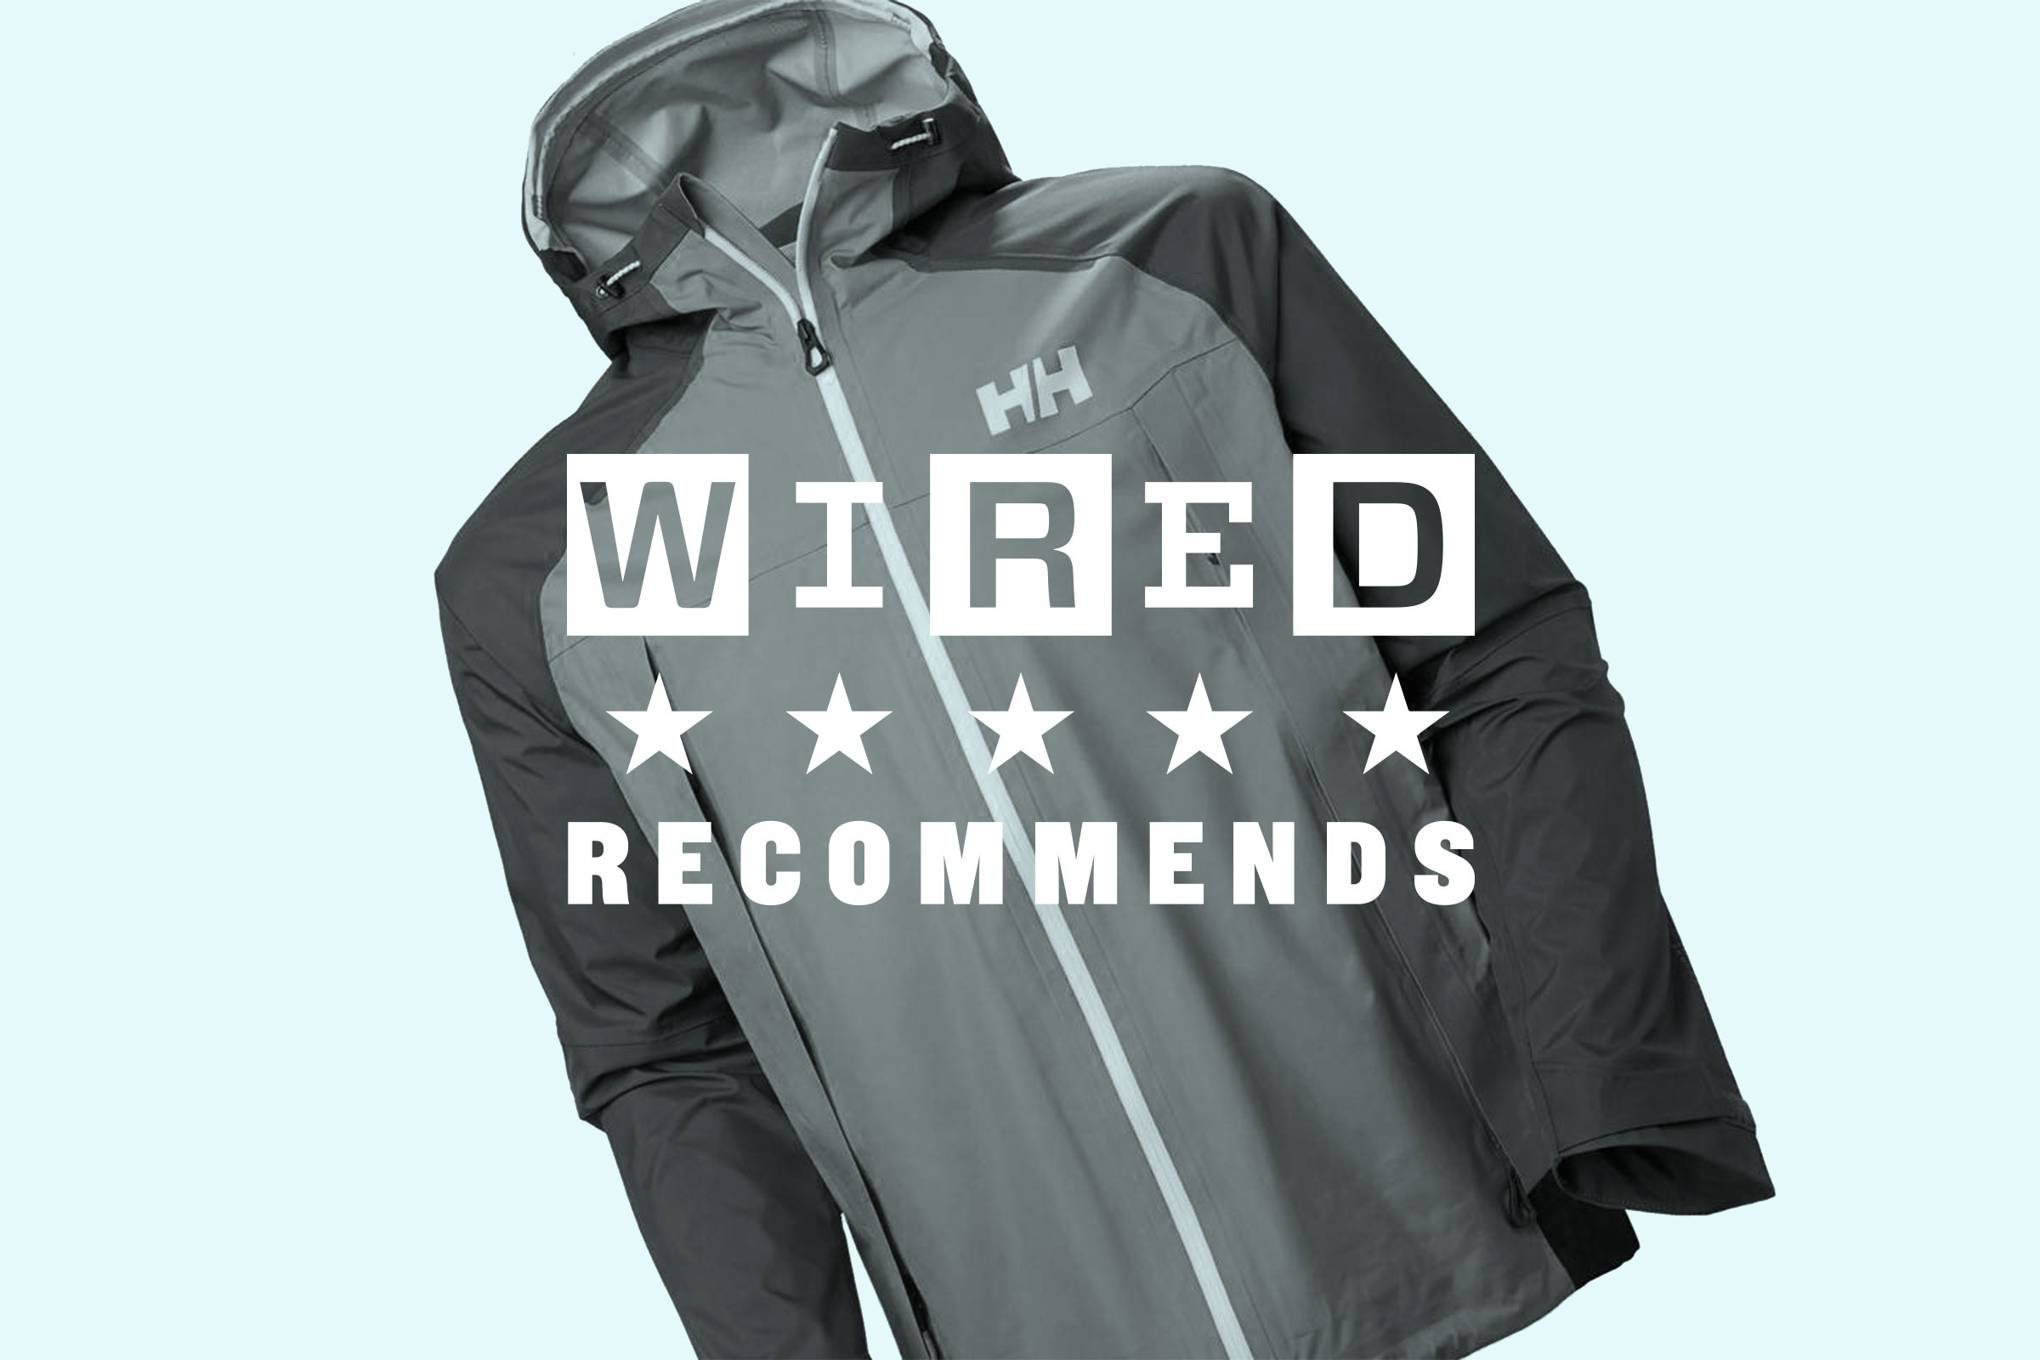 e5c1f456c2e17 The best waterproof jackets to keep you dry (and stylish) for men ...